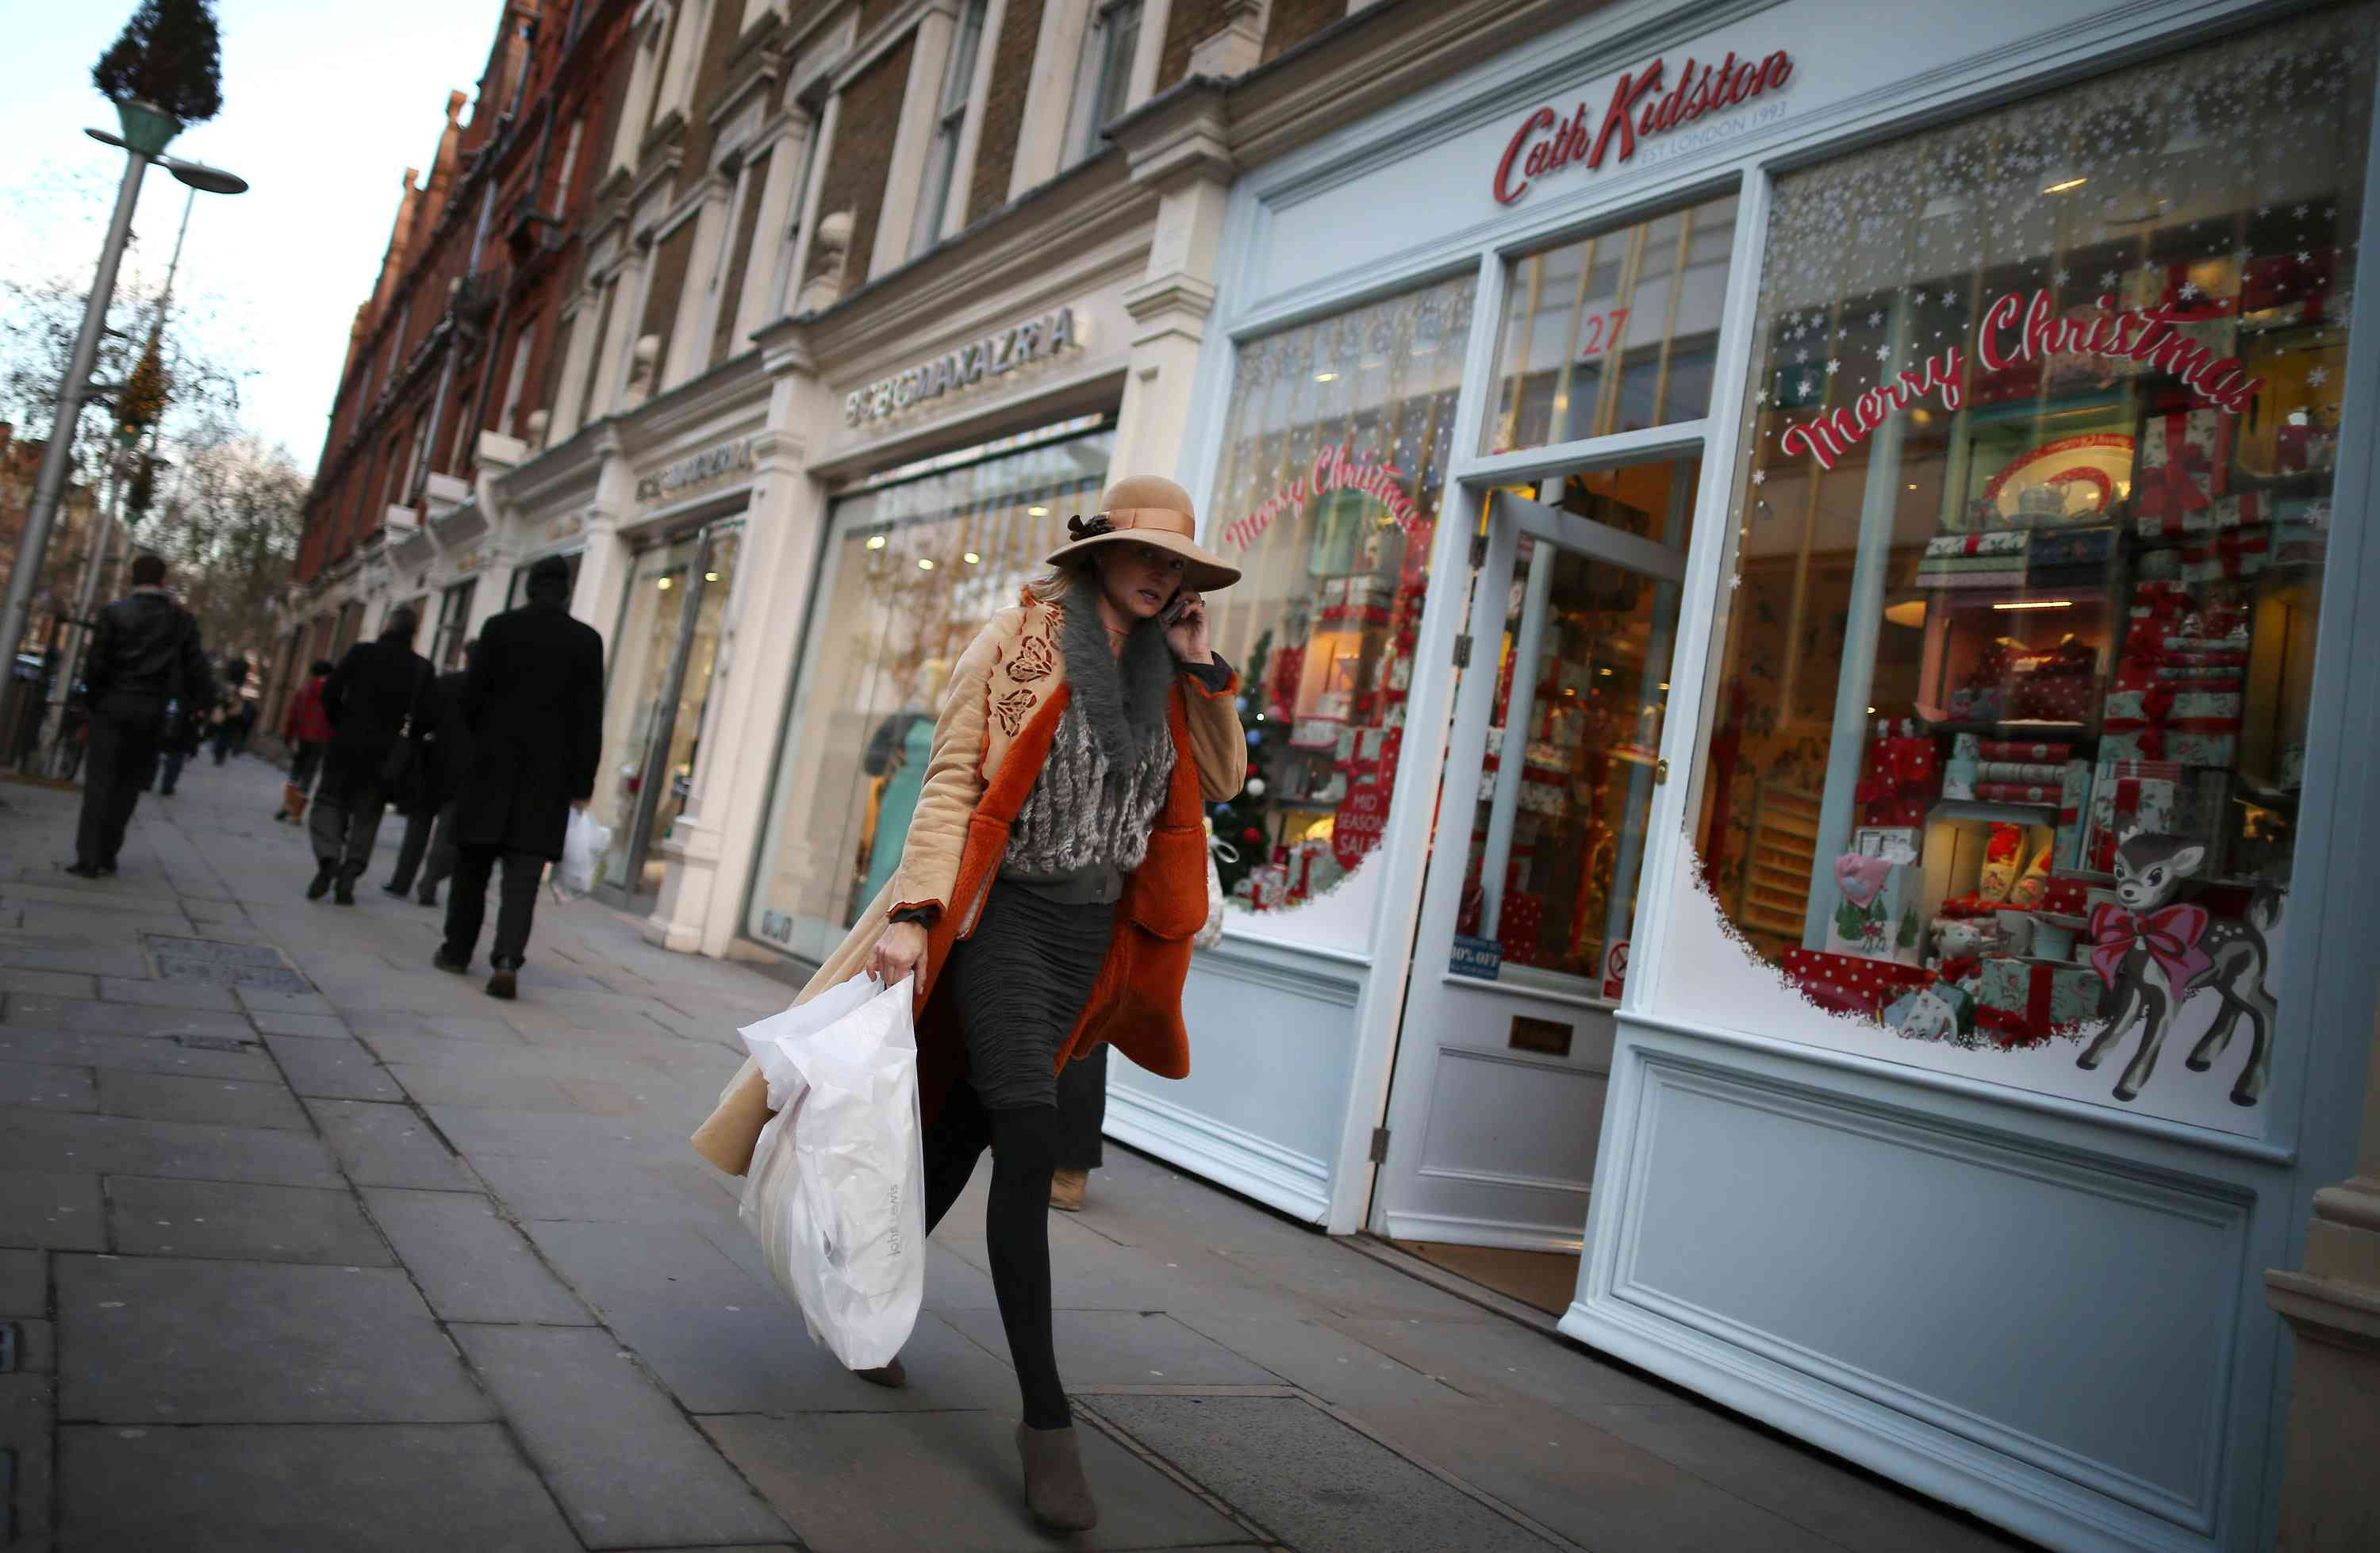 Woman holding a phone, walking down a street in London with shopping bags